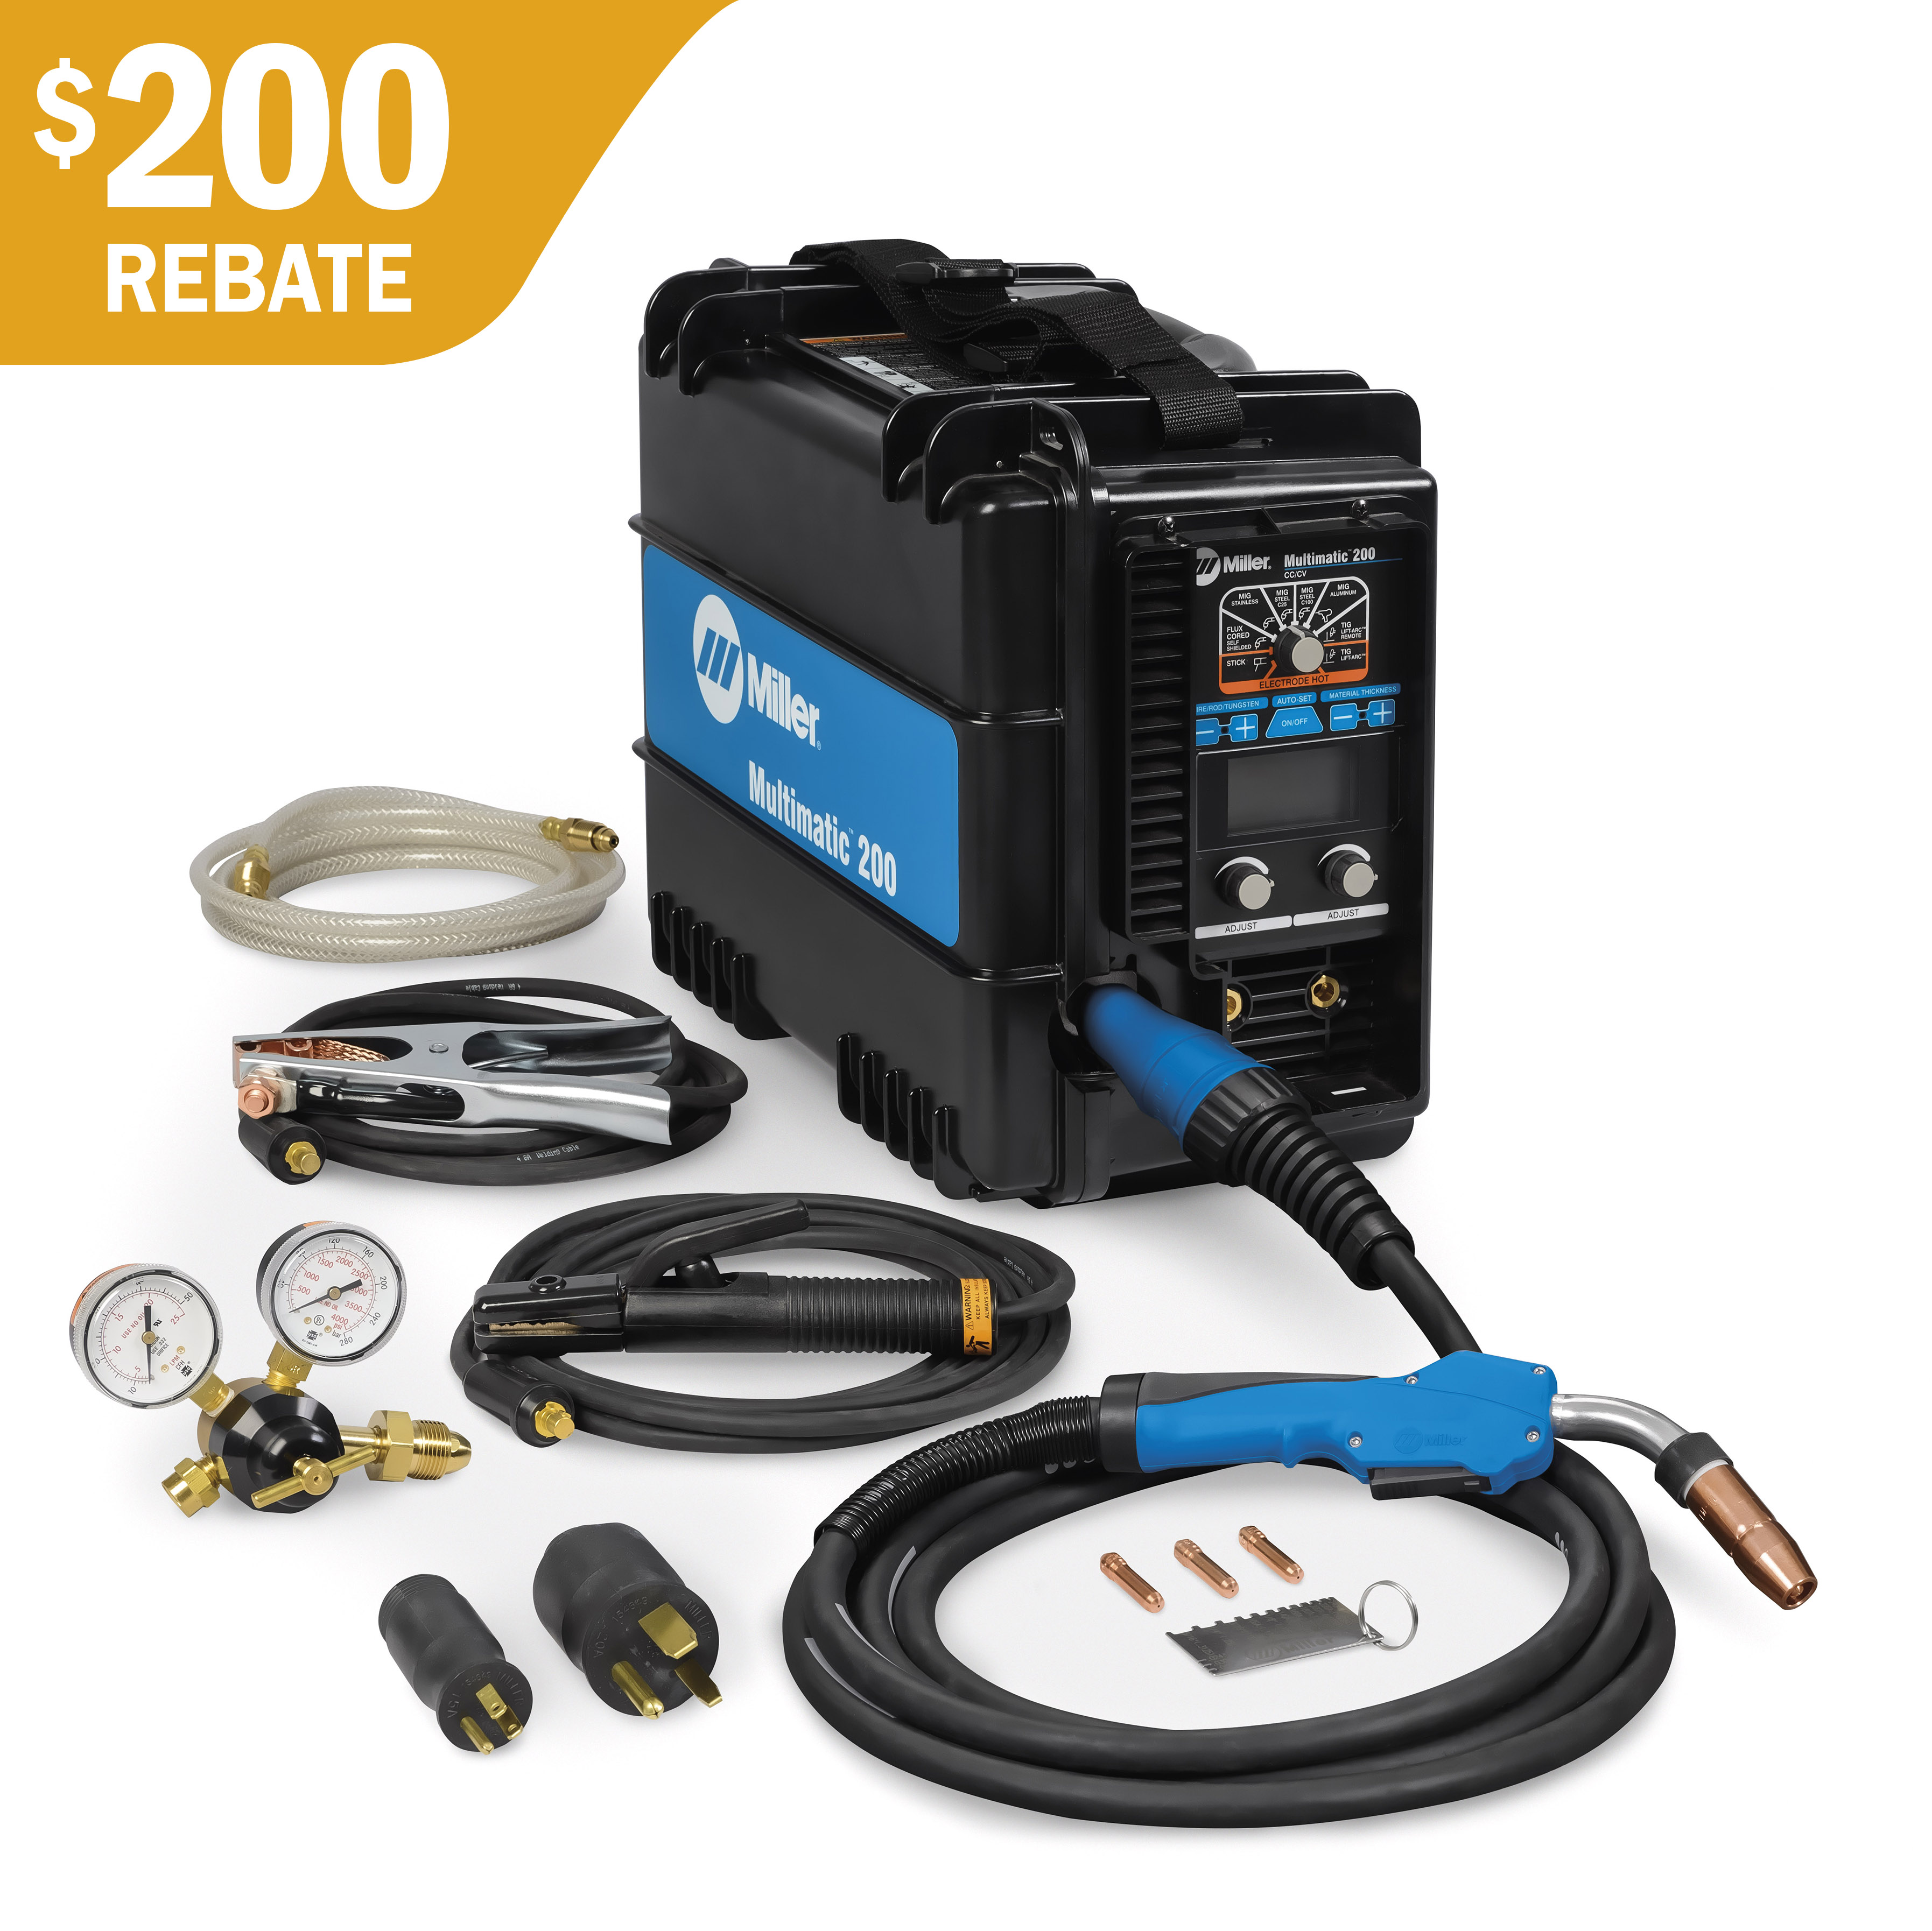 miller 250 welder wiring diagram apexi auto timer 200 for a best library multimatic multiprocess millerwelds bobcat